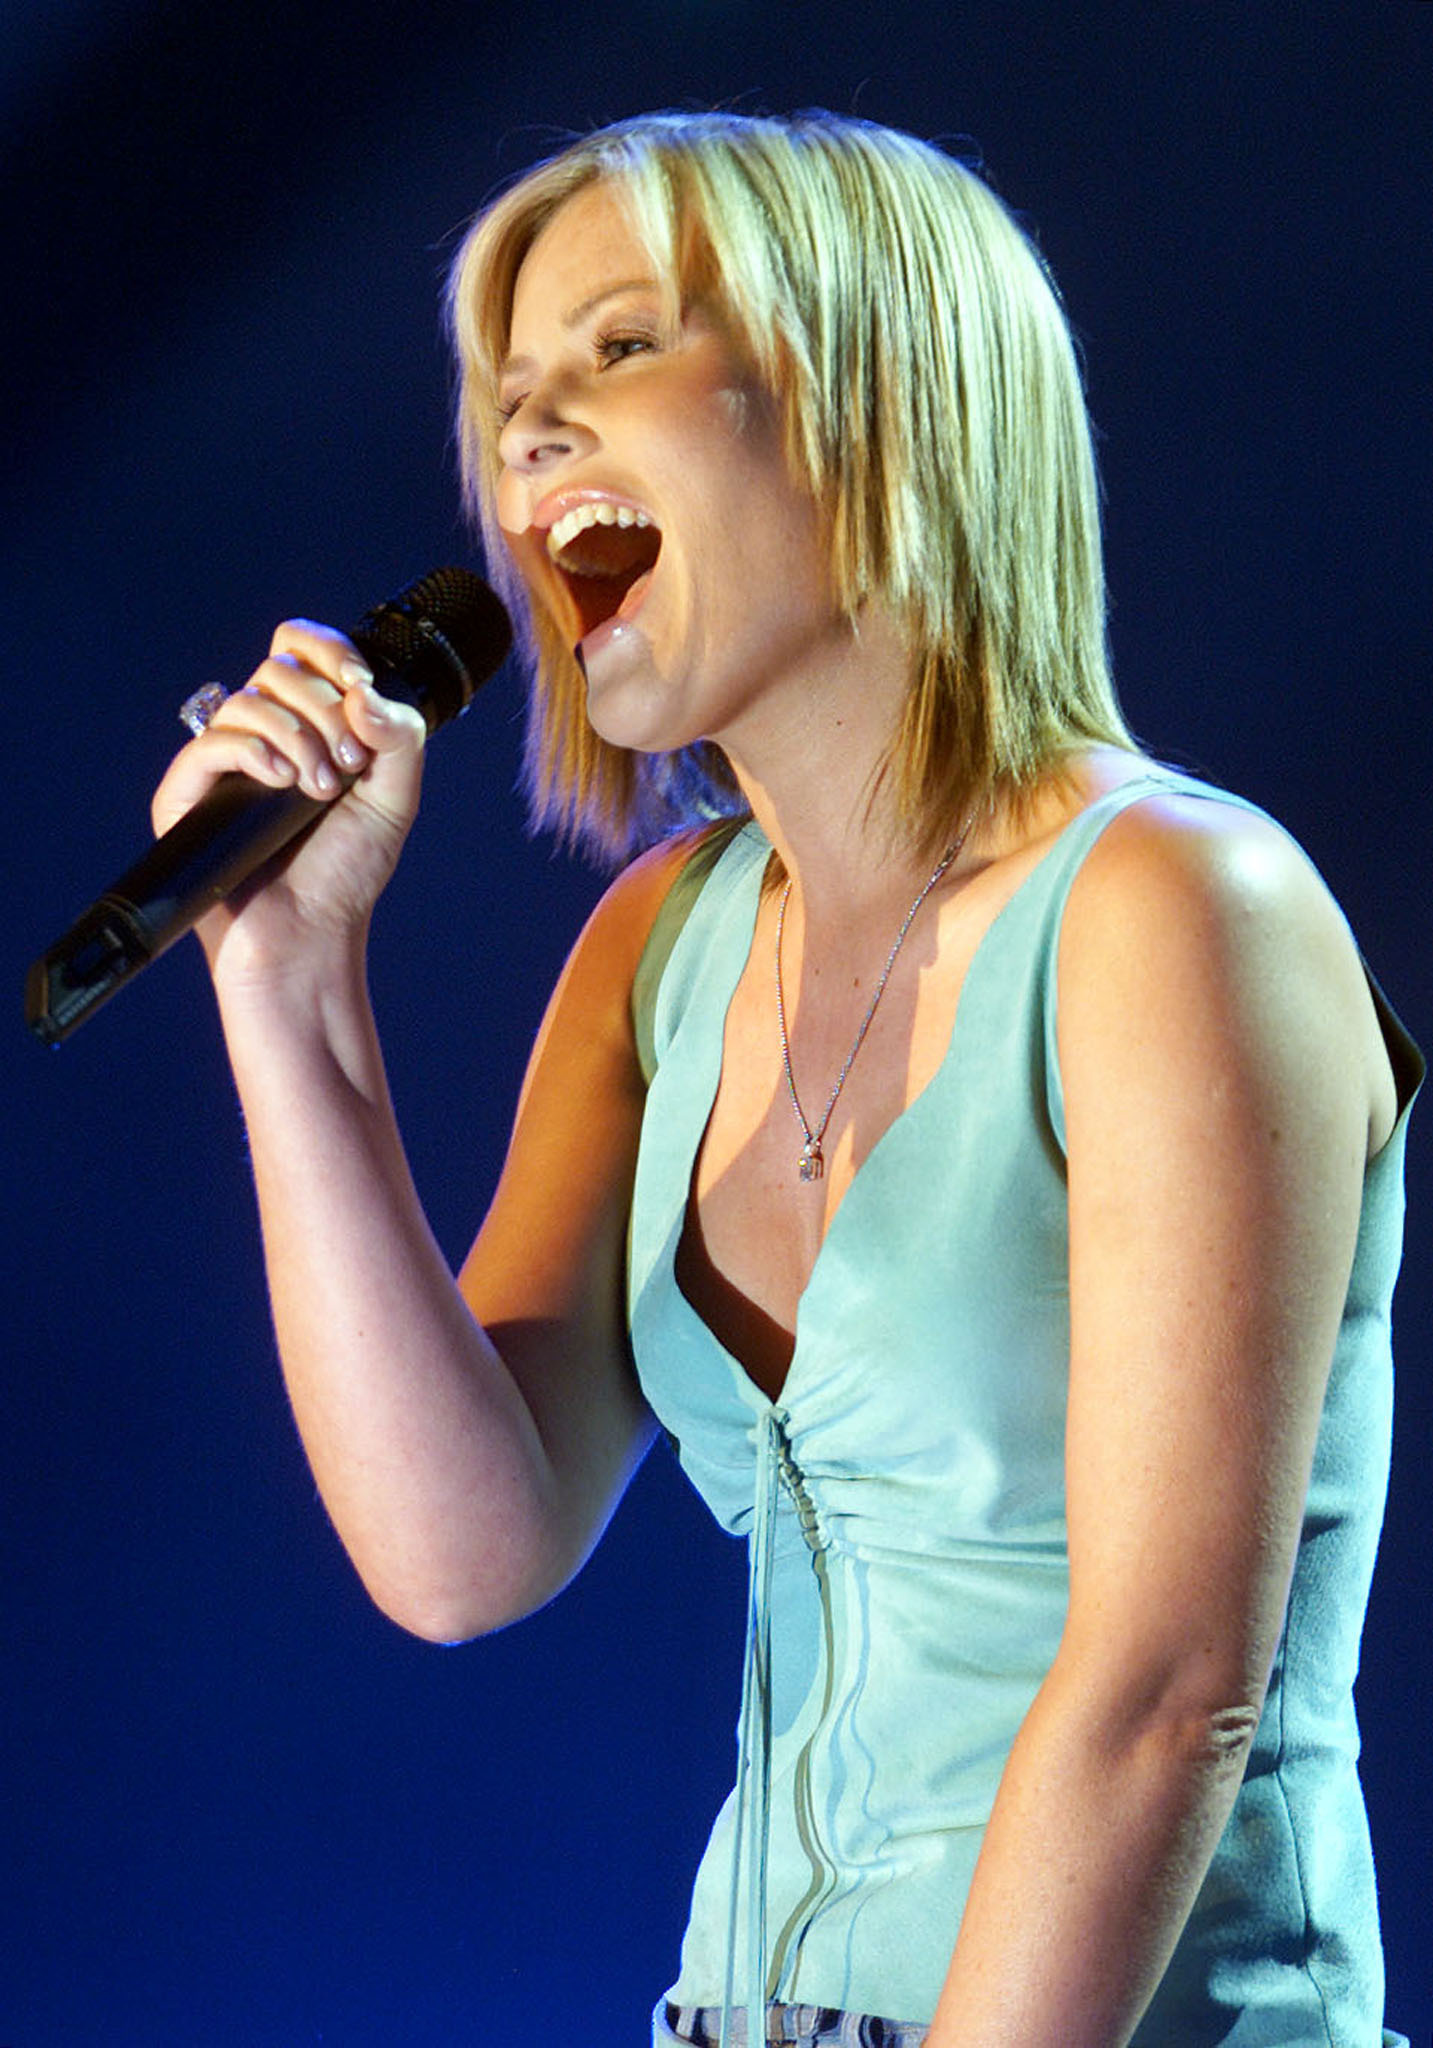 dido microphone singing Celebrity